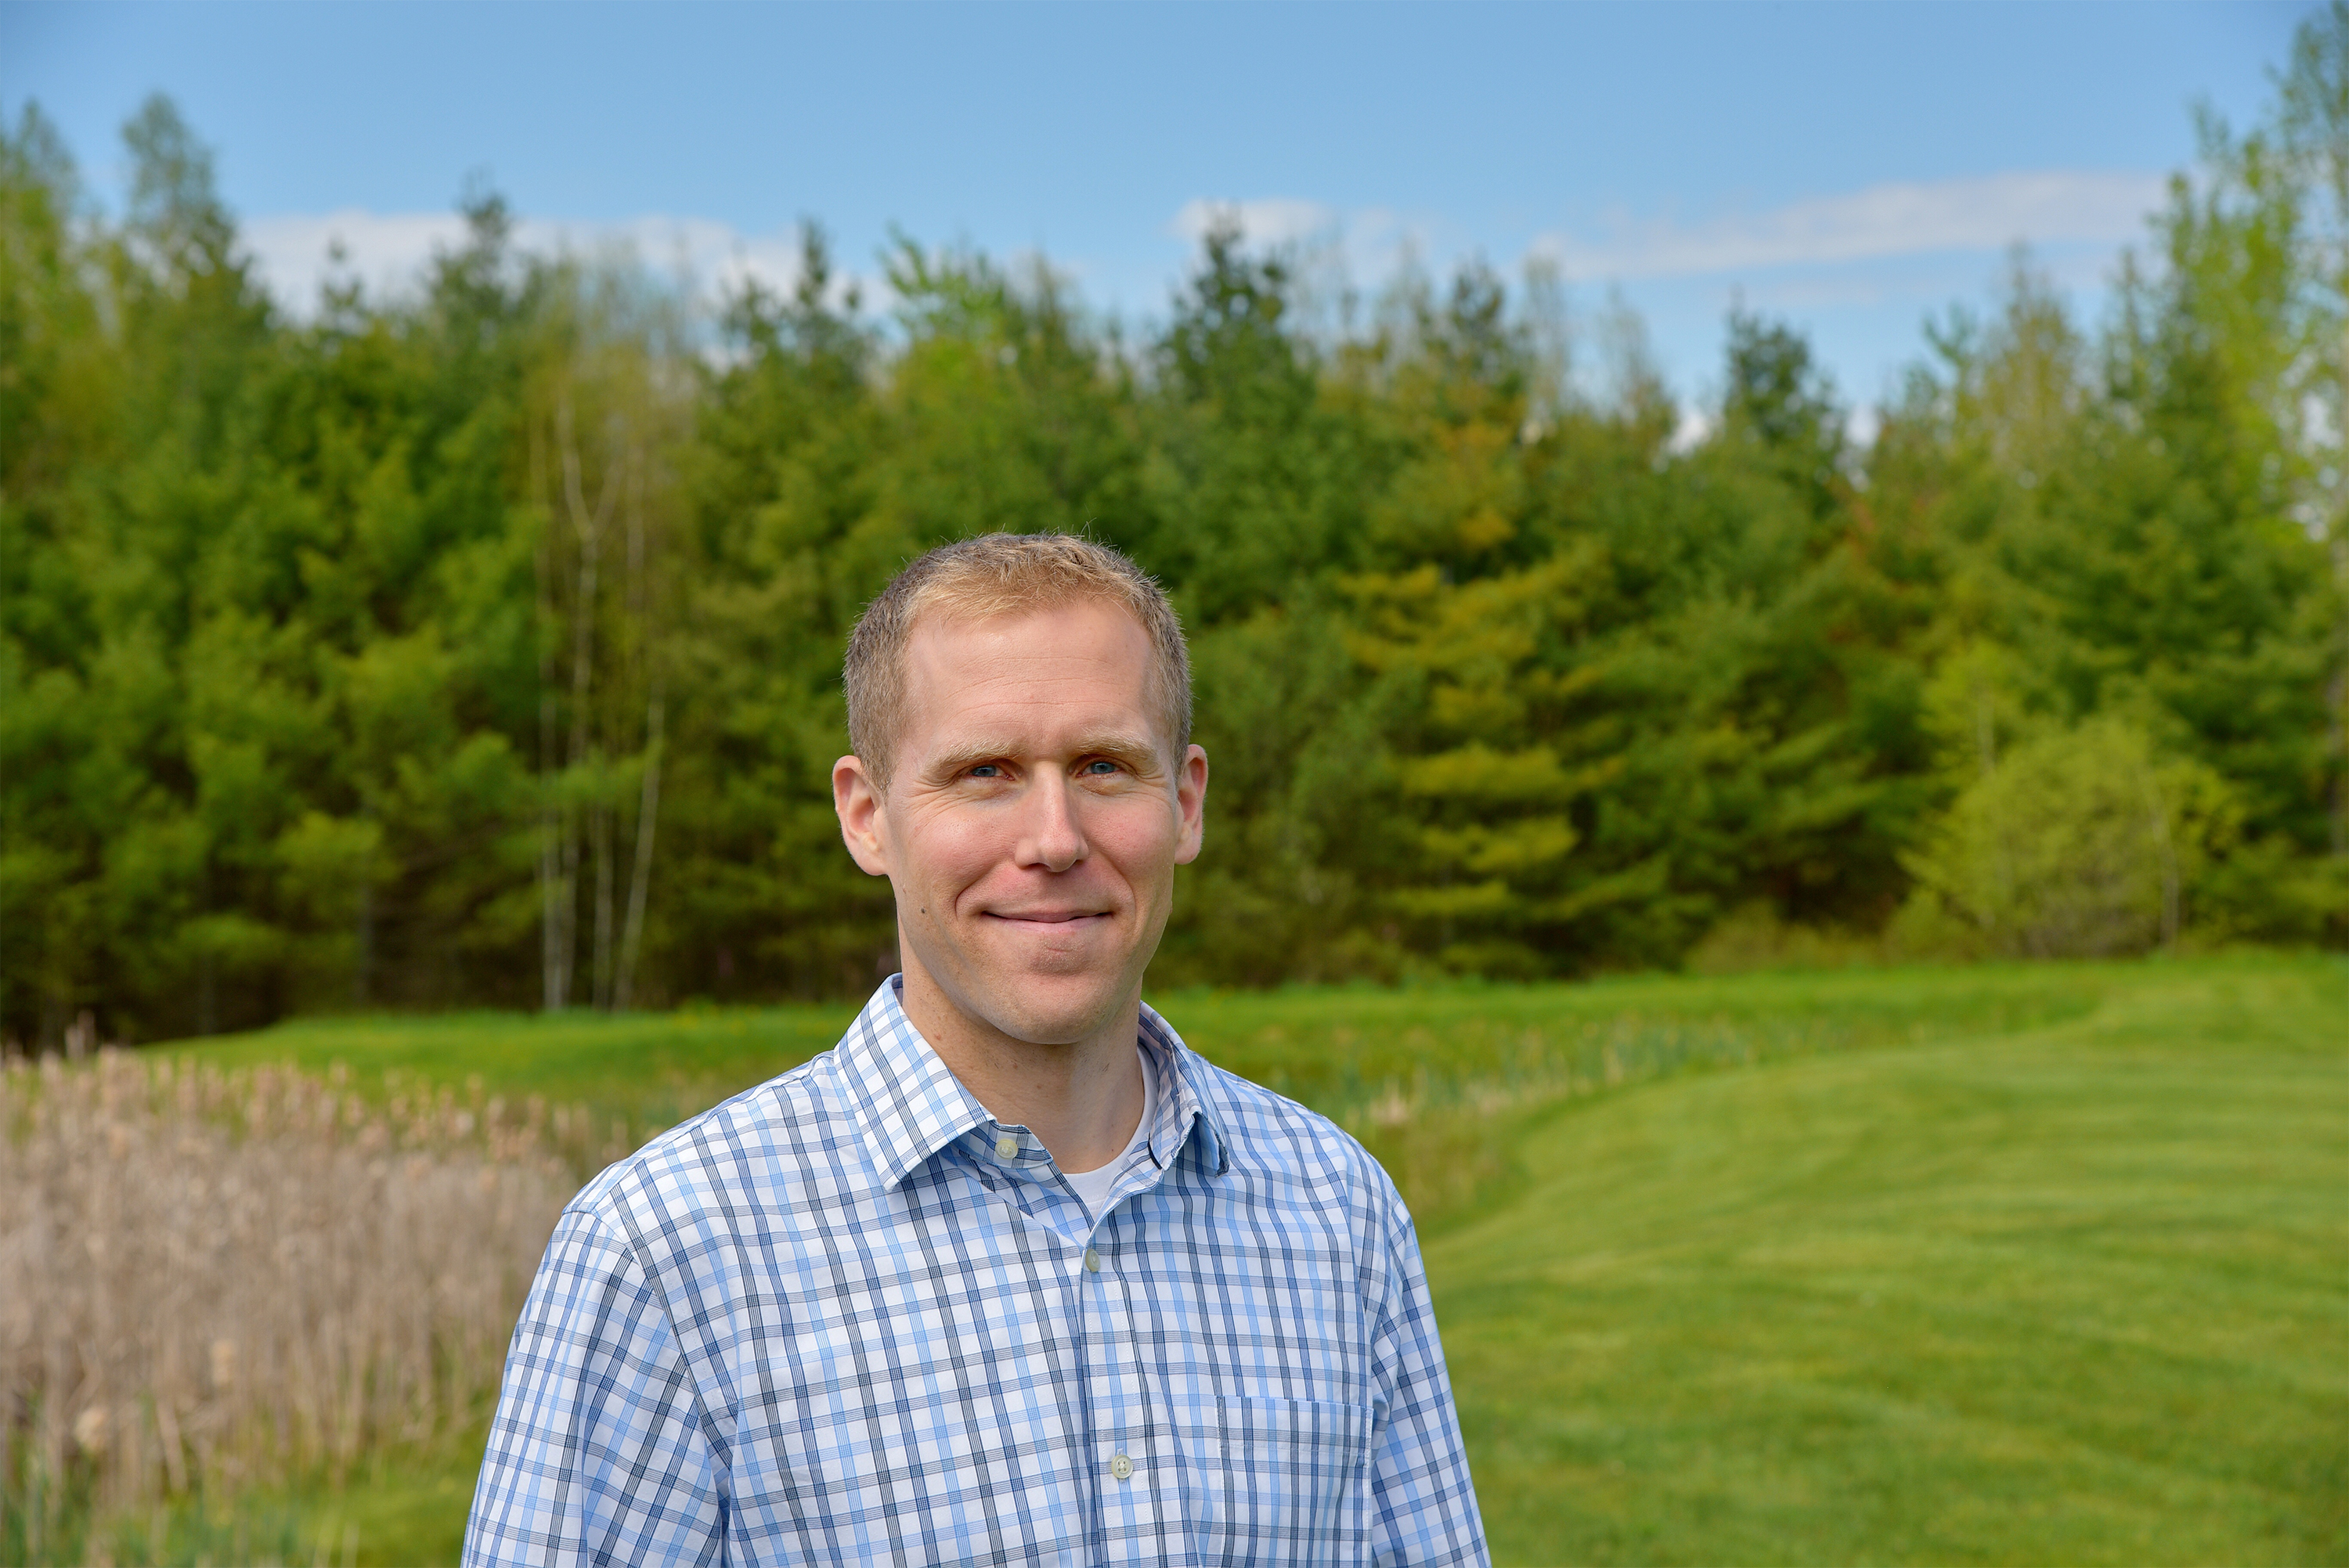 Nokian Names New Director of Marketing, and Promotes Bourassa